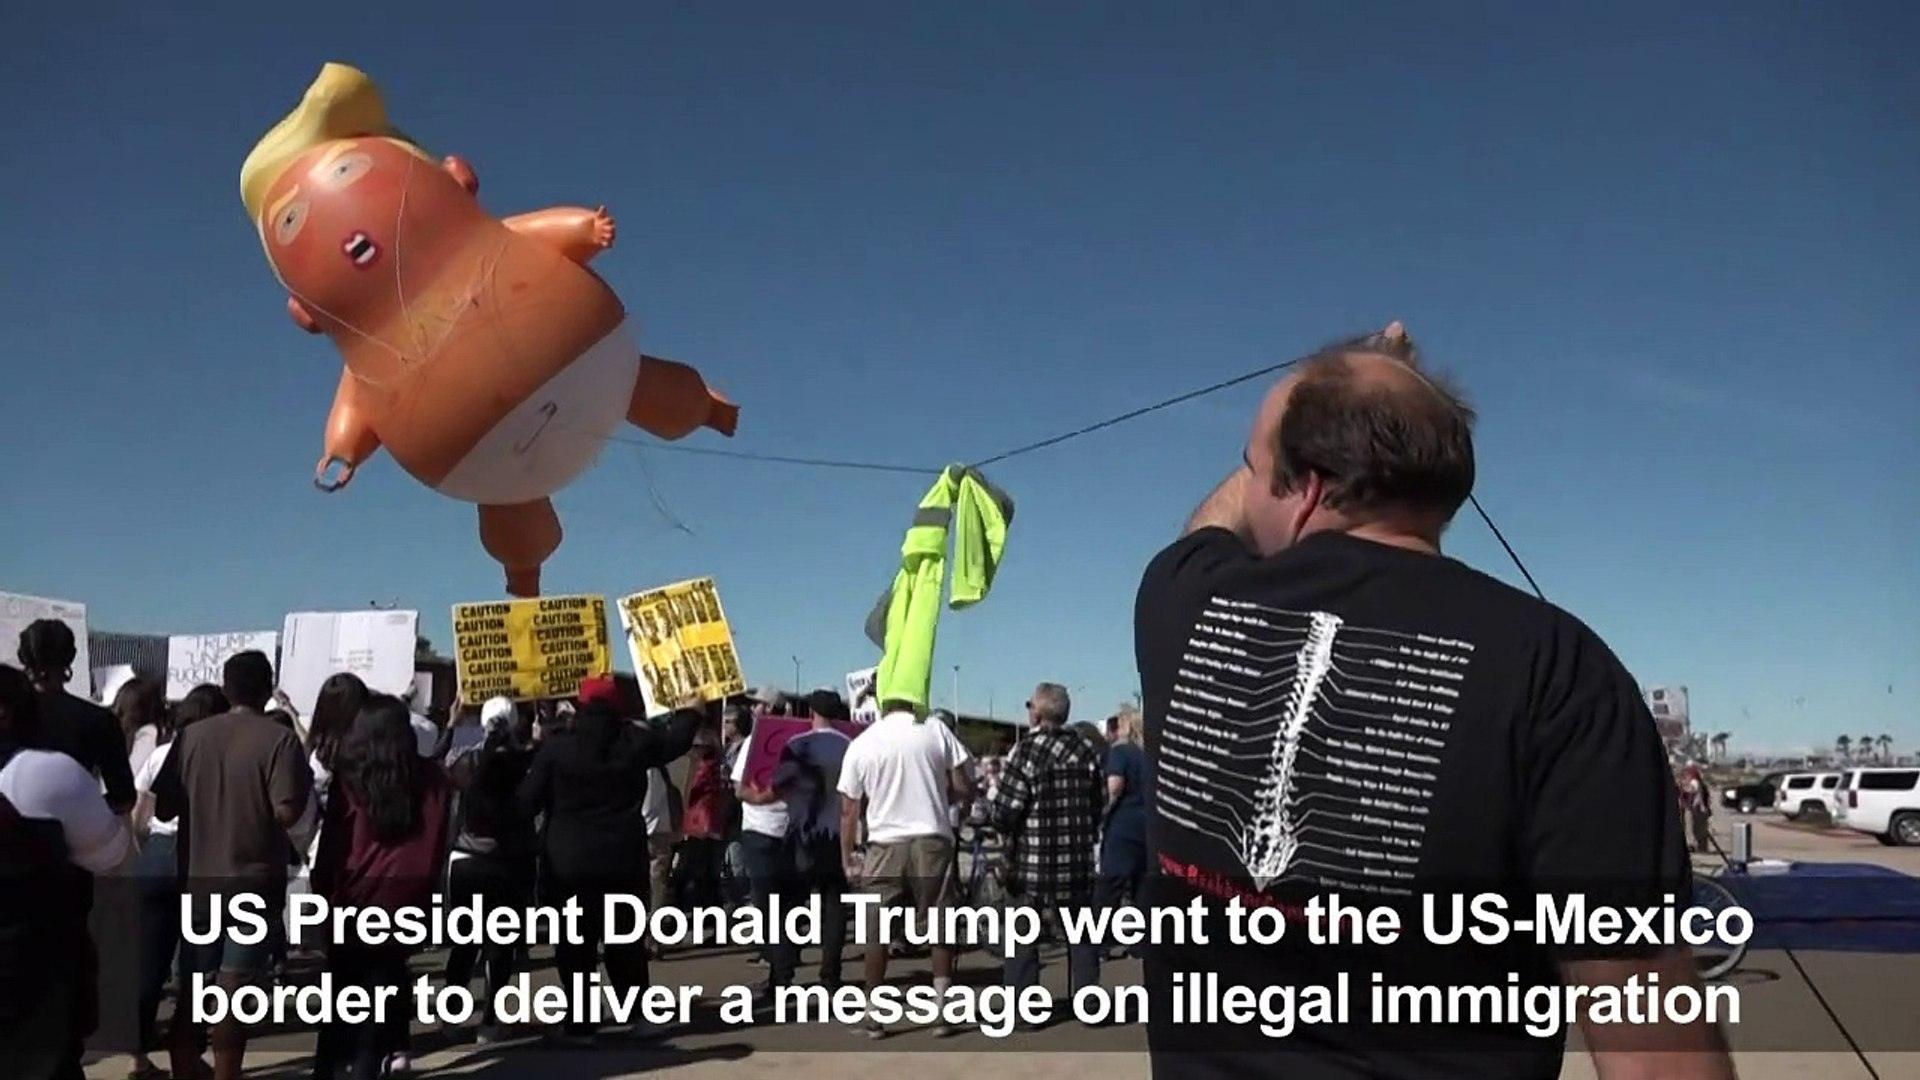 Baby Trump balloon greets Trump at US-Mexico border